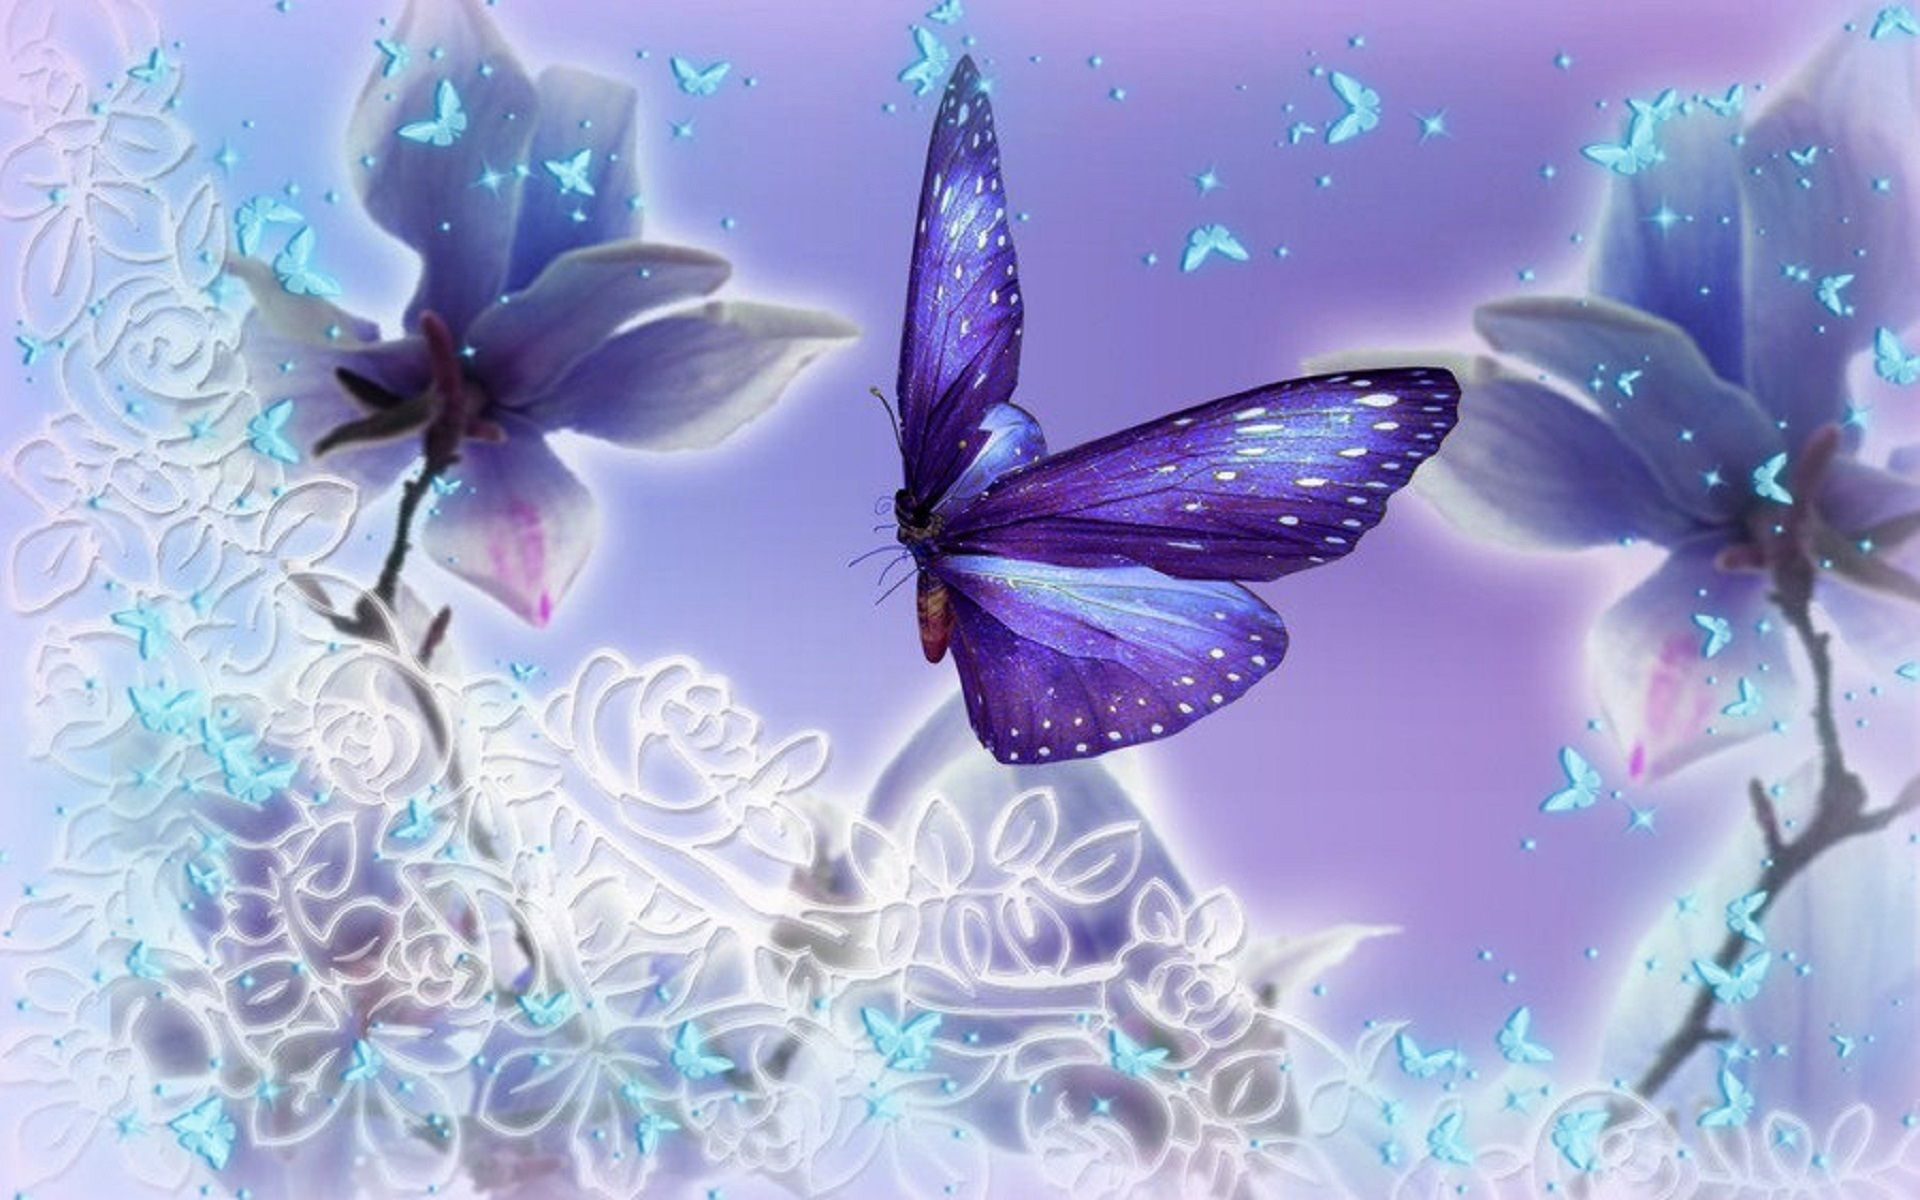 1920x1200 Download Purple Butterfly Wallpaper Images #n1s 1920x1200 px 448.80 ...